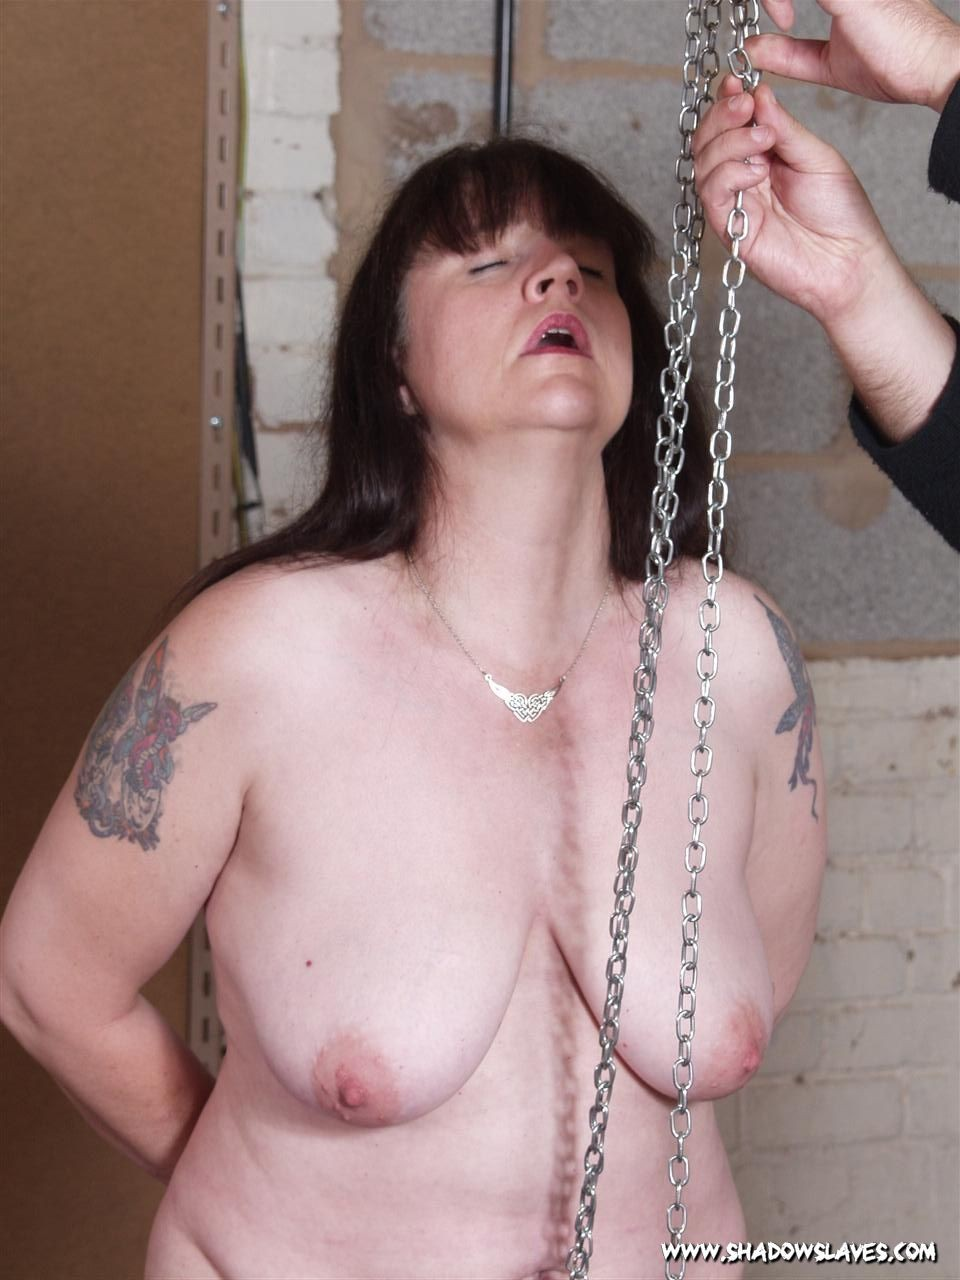 Jays mature pussy pain and extreme bdsm submission in the dungeon for the experi #72120084